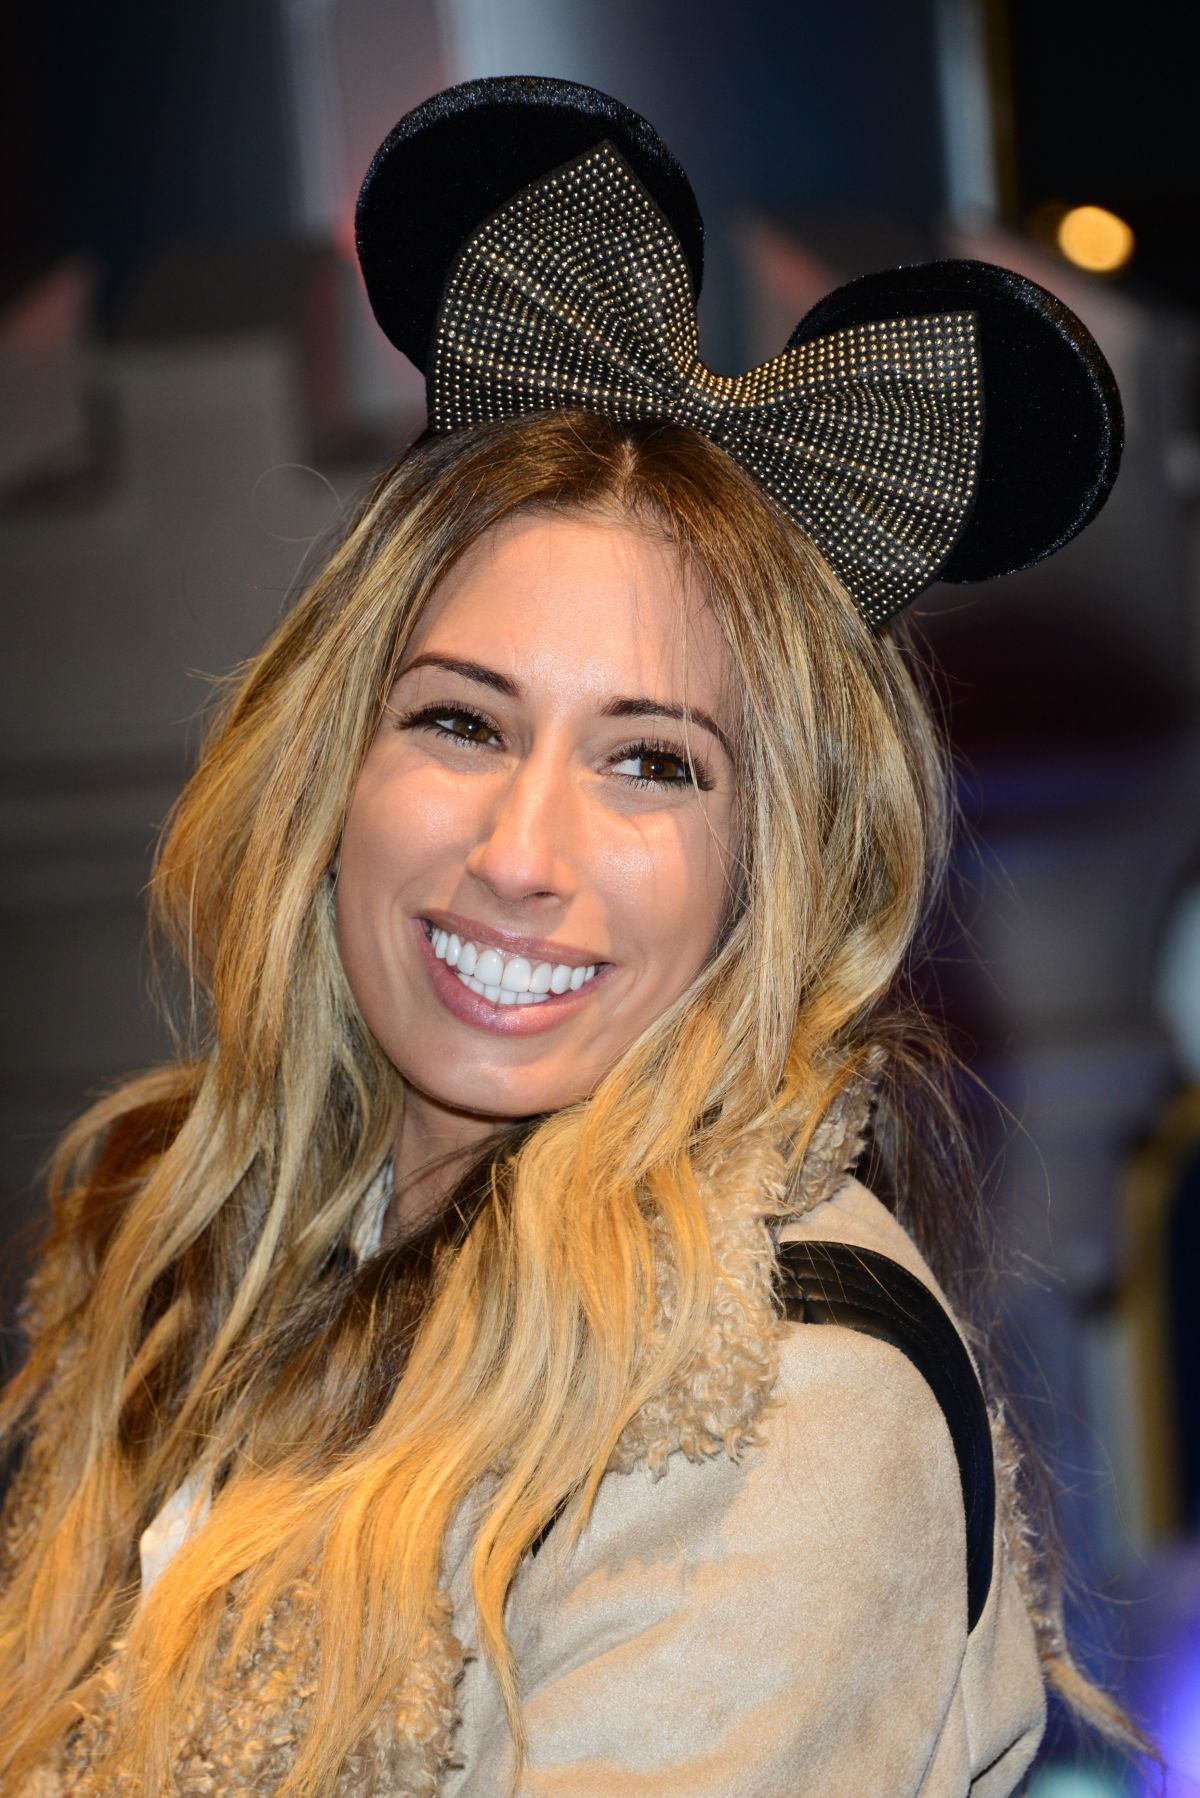 stacey solomon - photo #34